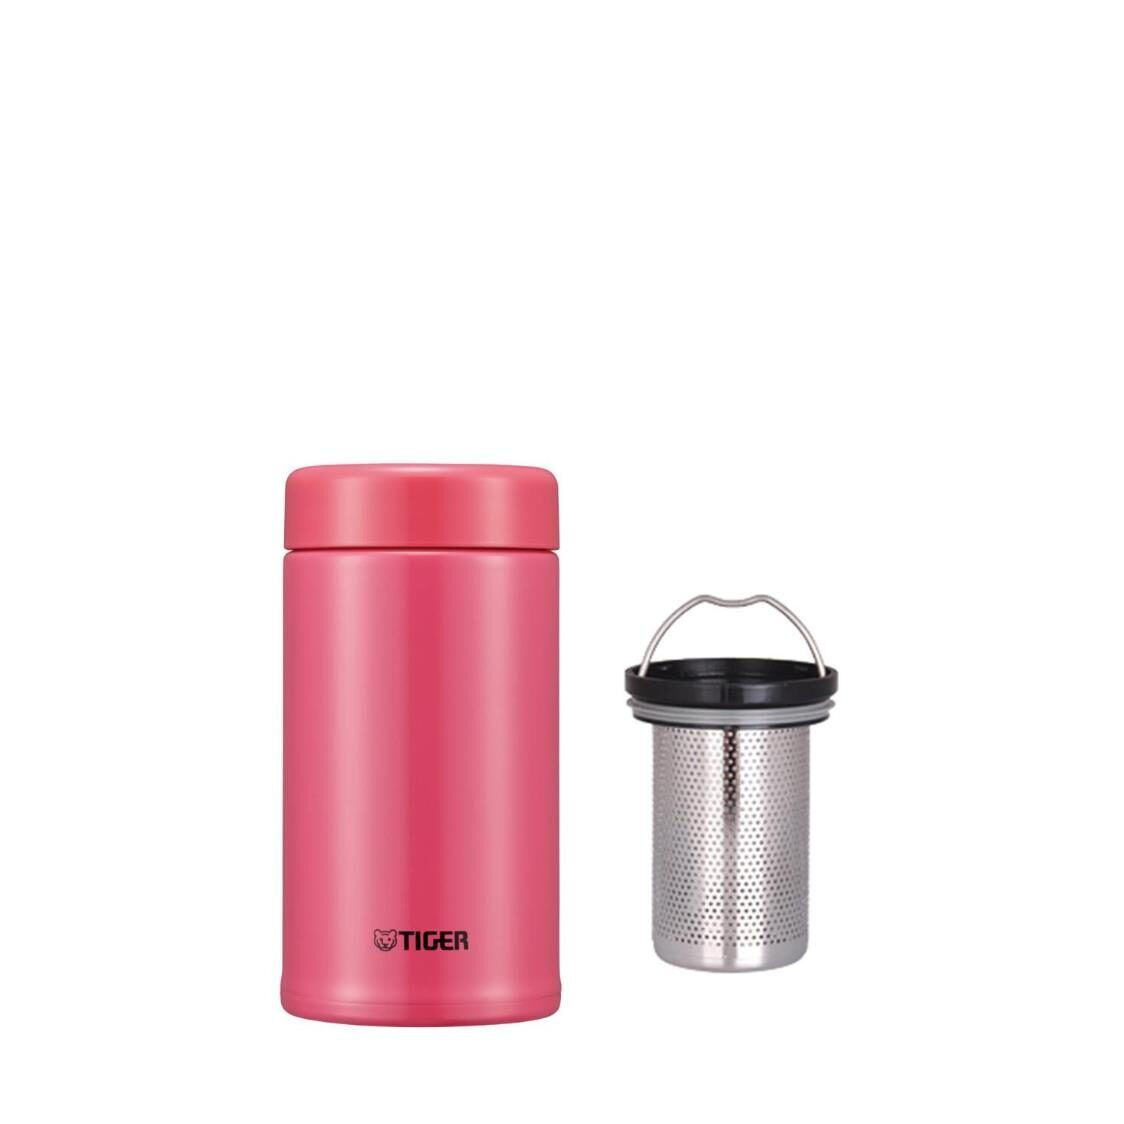 Tiger 360ml Stainless Steel Mug with Tea Strainer -  PINK MCA-T360 PI